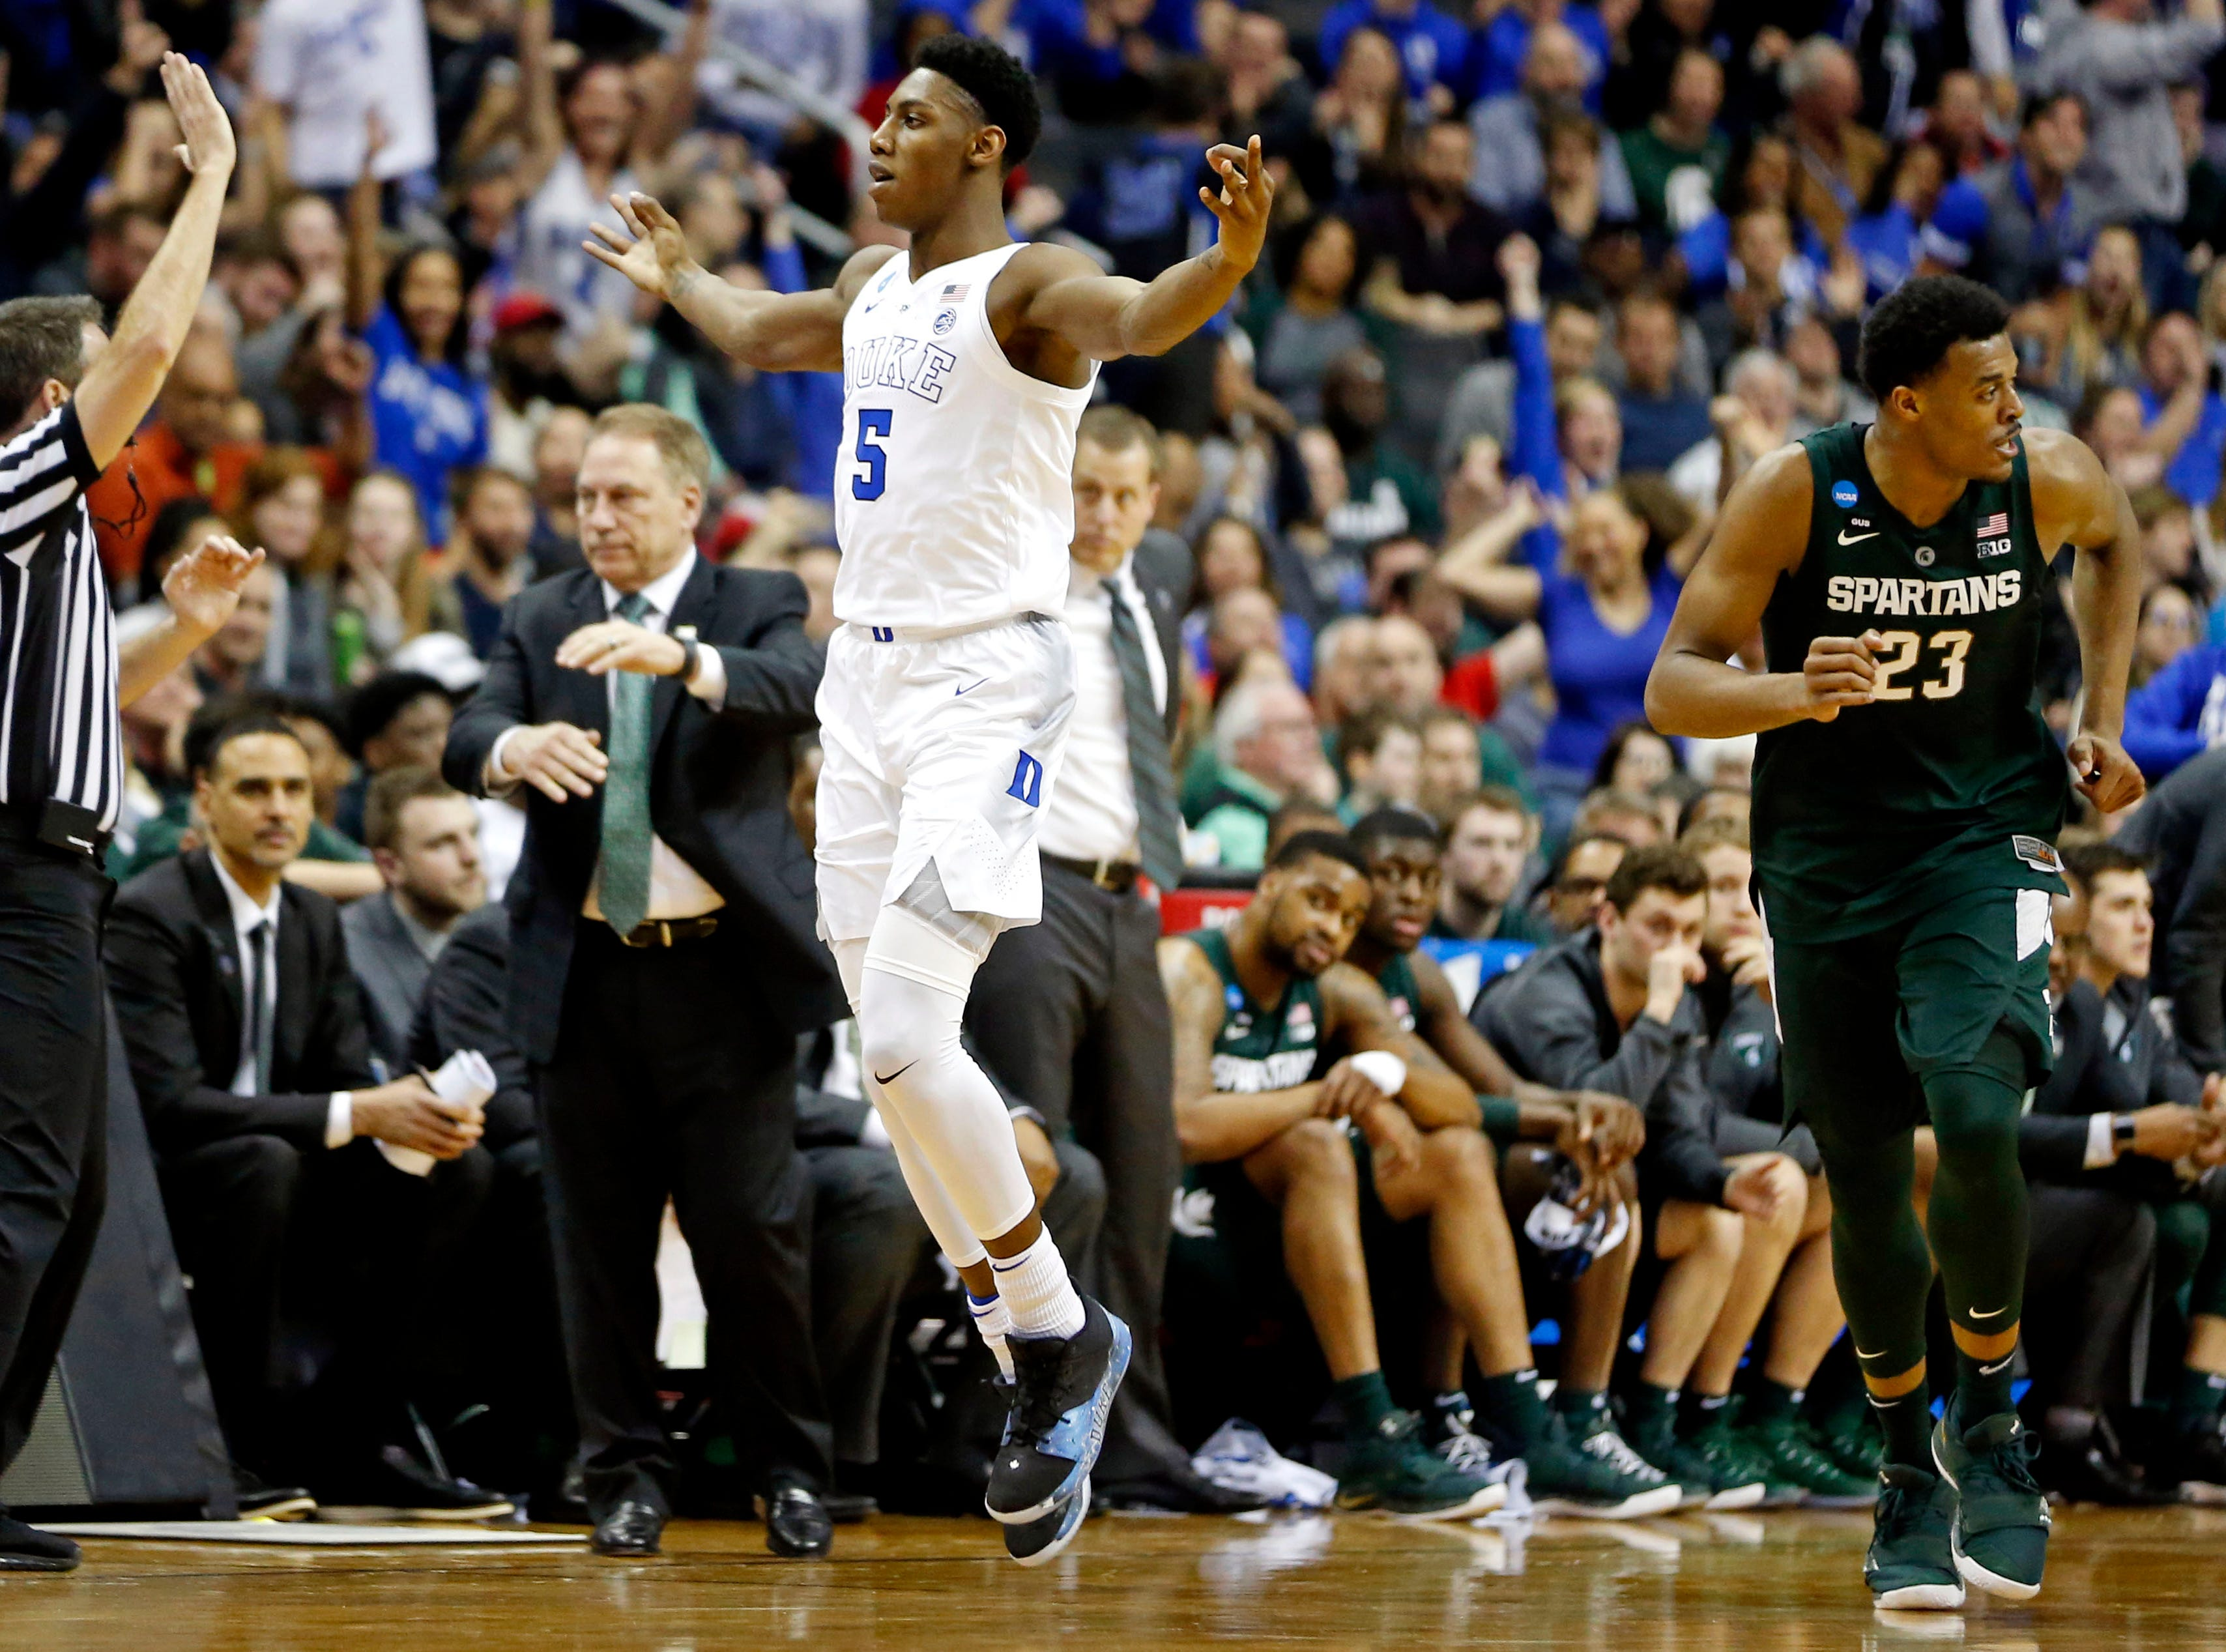 Mar 31, 2019; Washington, DC, USA; Duke Blue Devils forward RJ Barrett (5) races after a basket during the first half against the Michigan State Spartans in the championship game of the east regional of the 2019 NCAA Tournament at Capital One Arena. Mandatory Credit: Amber Searls-USA TODAY Sports